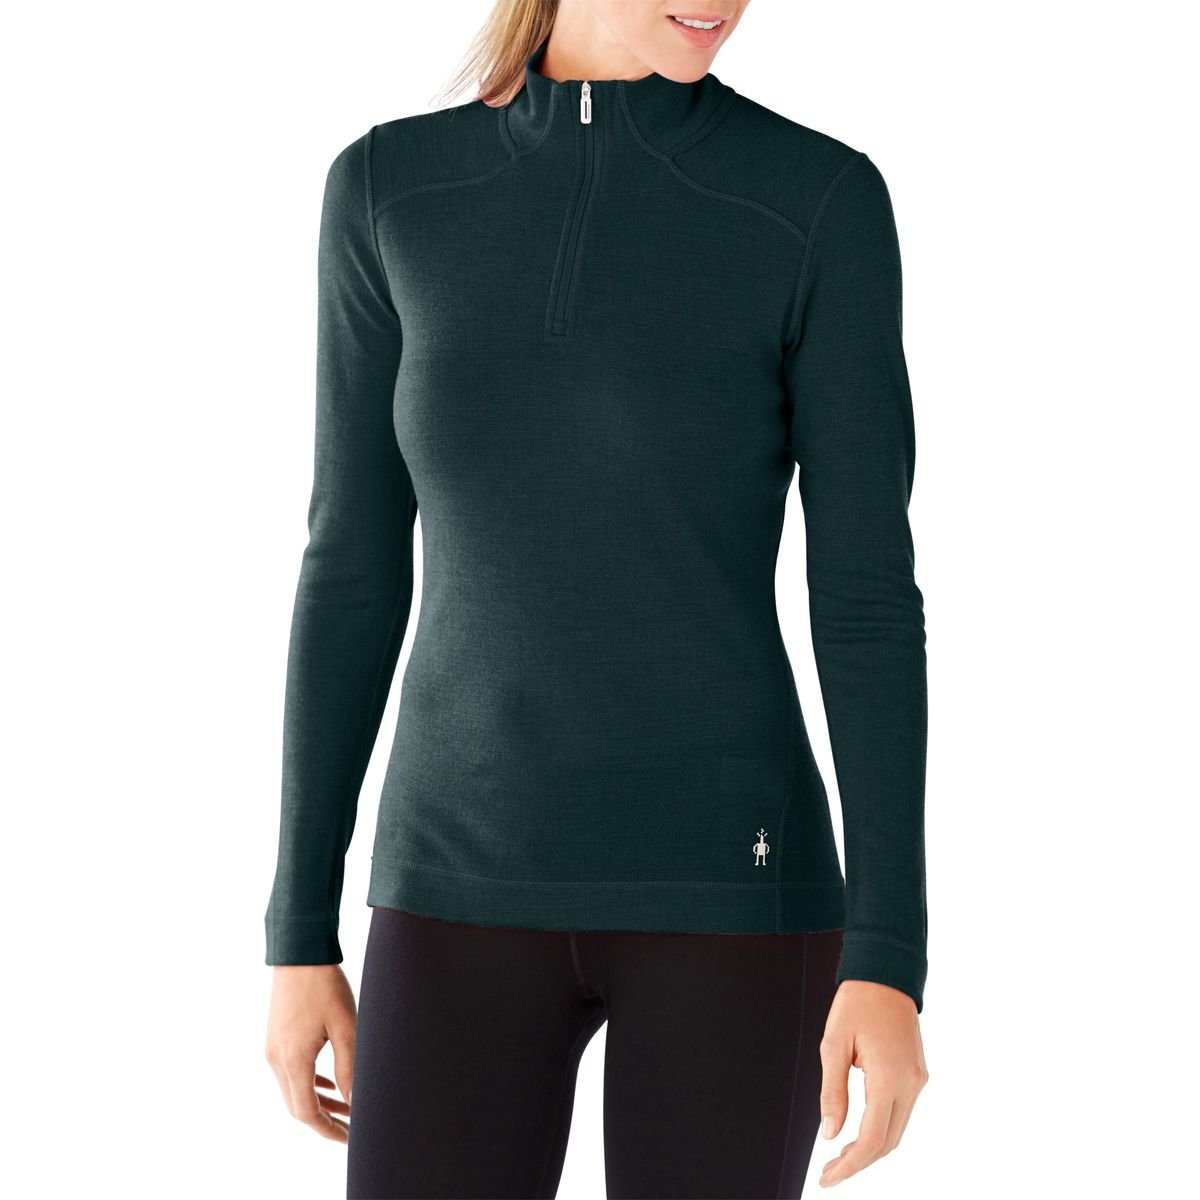 Lochness Heather Small SmartwoolWomen's NTS Mid 250 Zip Top